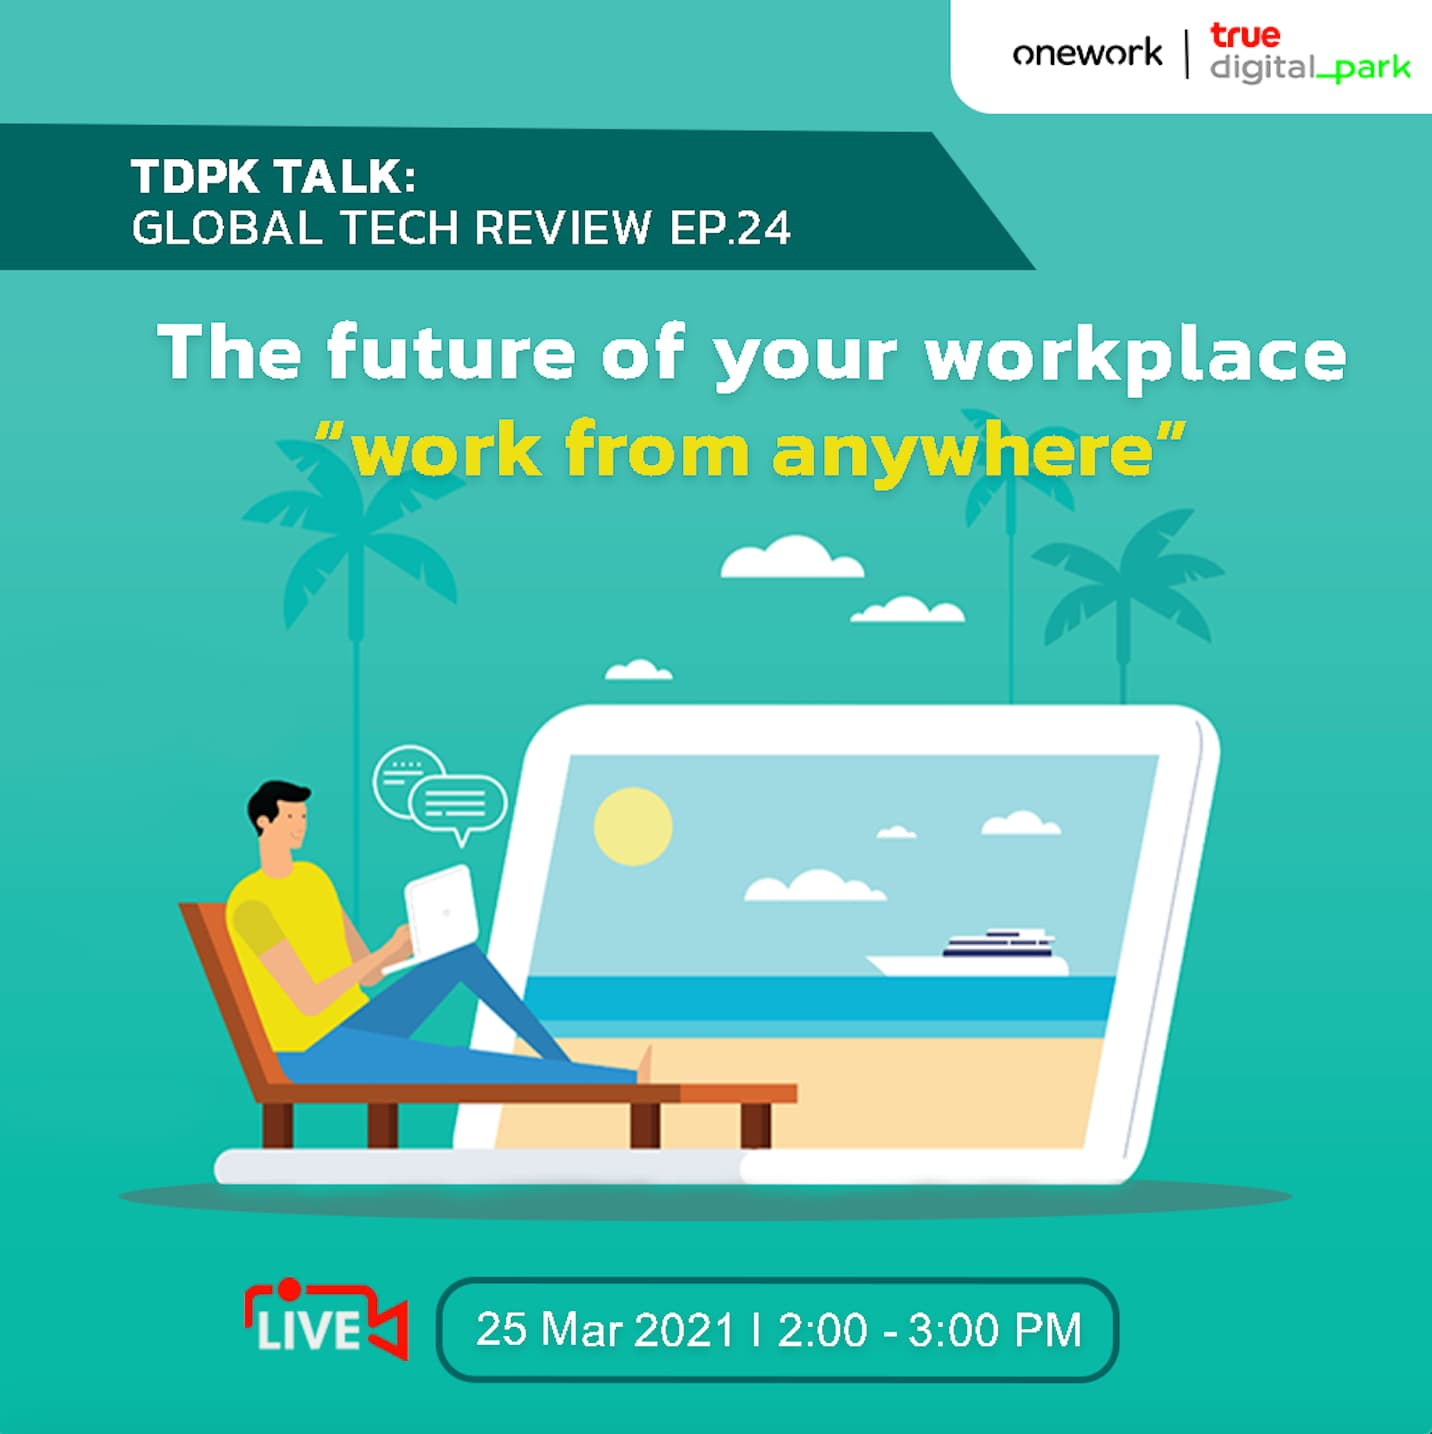 The future of your workplace - Work from anywhere